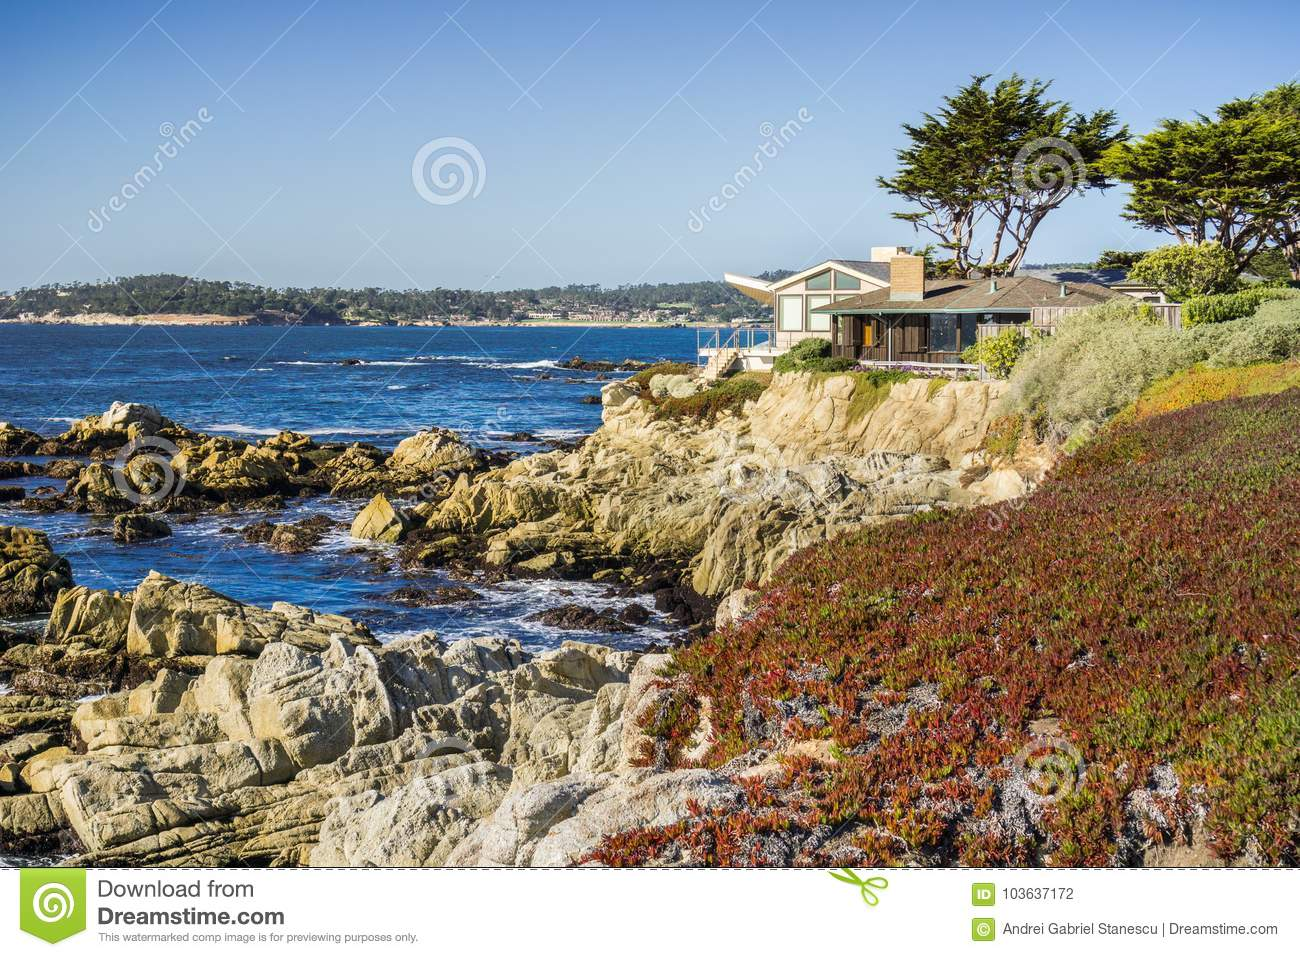 Houses build on the cliffs on the Pacific Ocean, Carmel-by-the-Sea, Monterey Peninsula, California